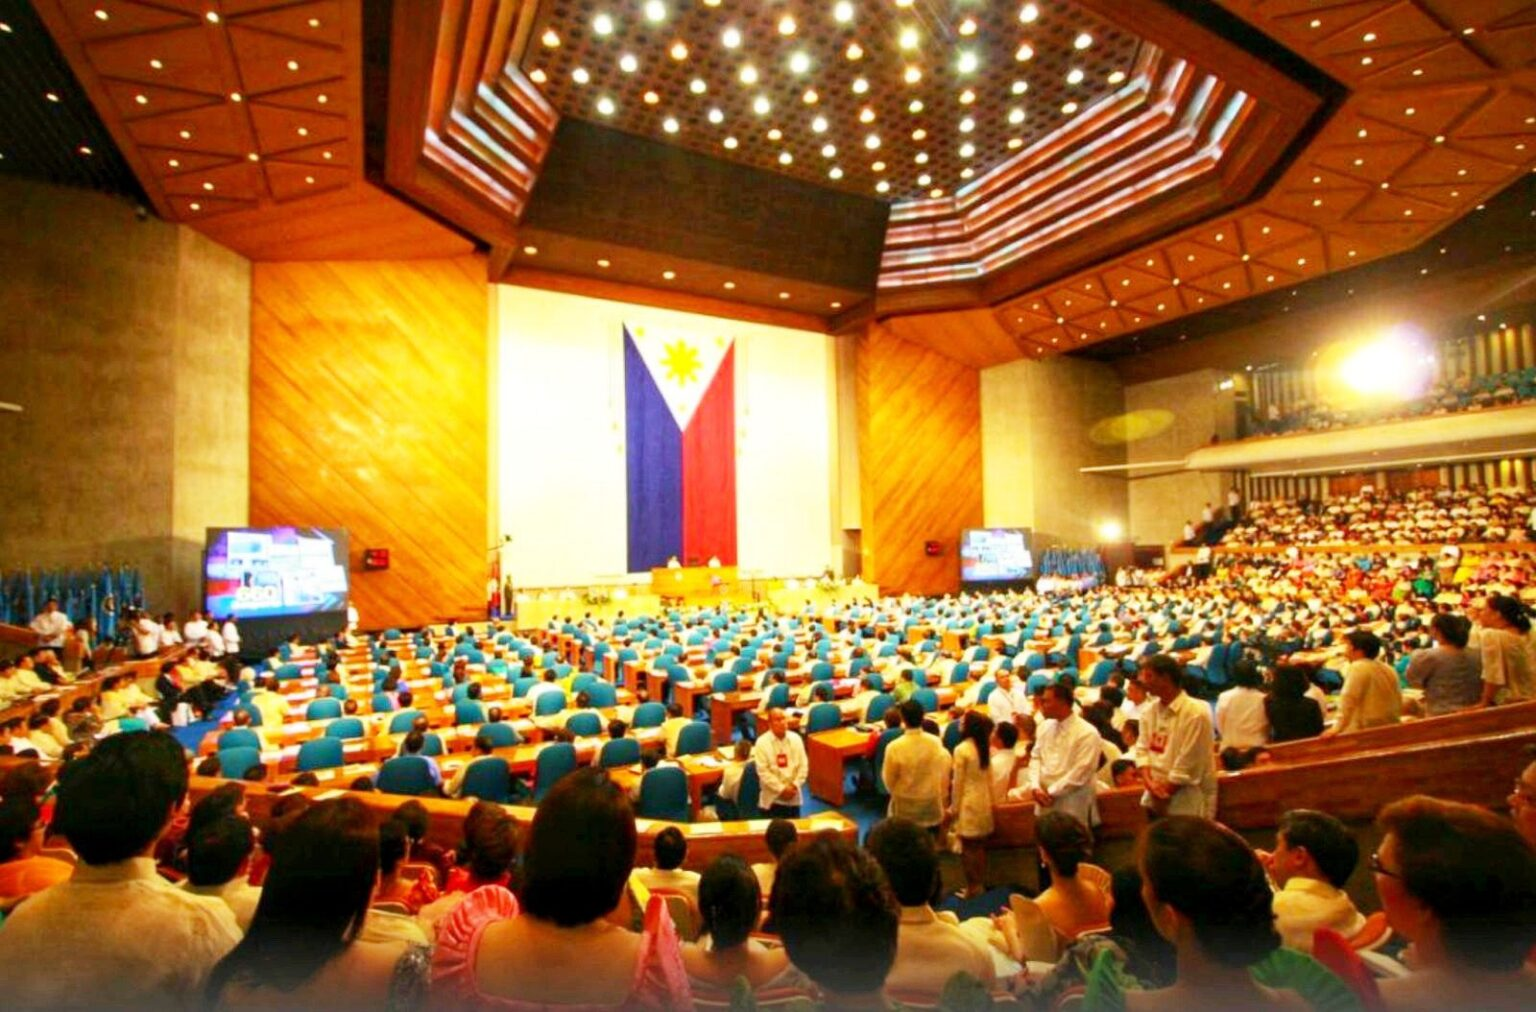 Lawmaker urges colleagues to prioritize Bayanihan 3 when Congress resumes session